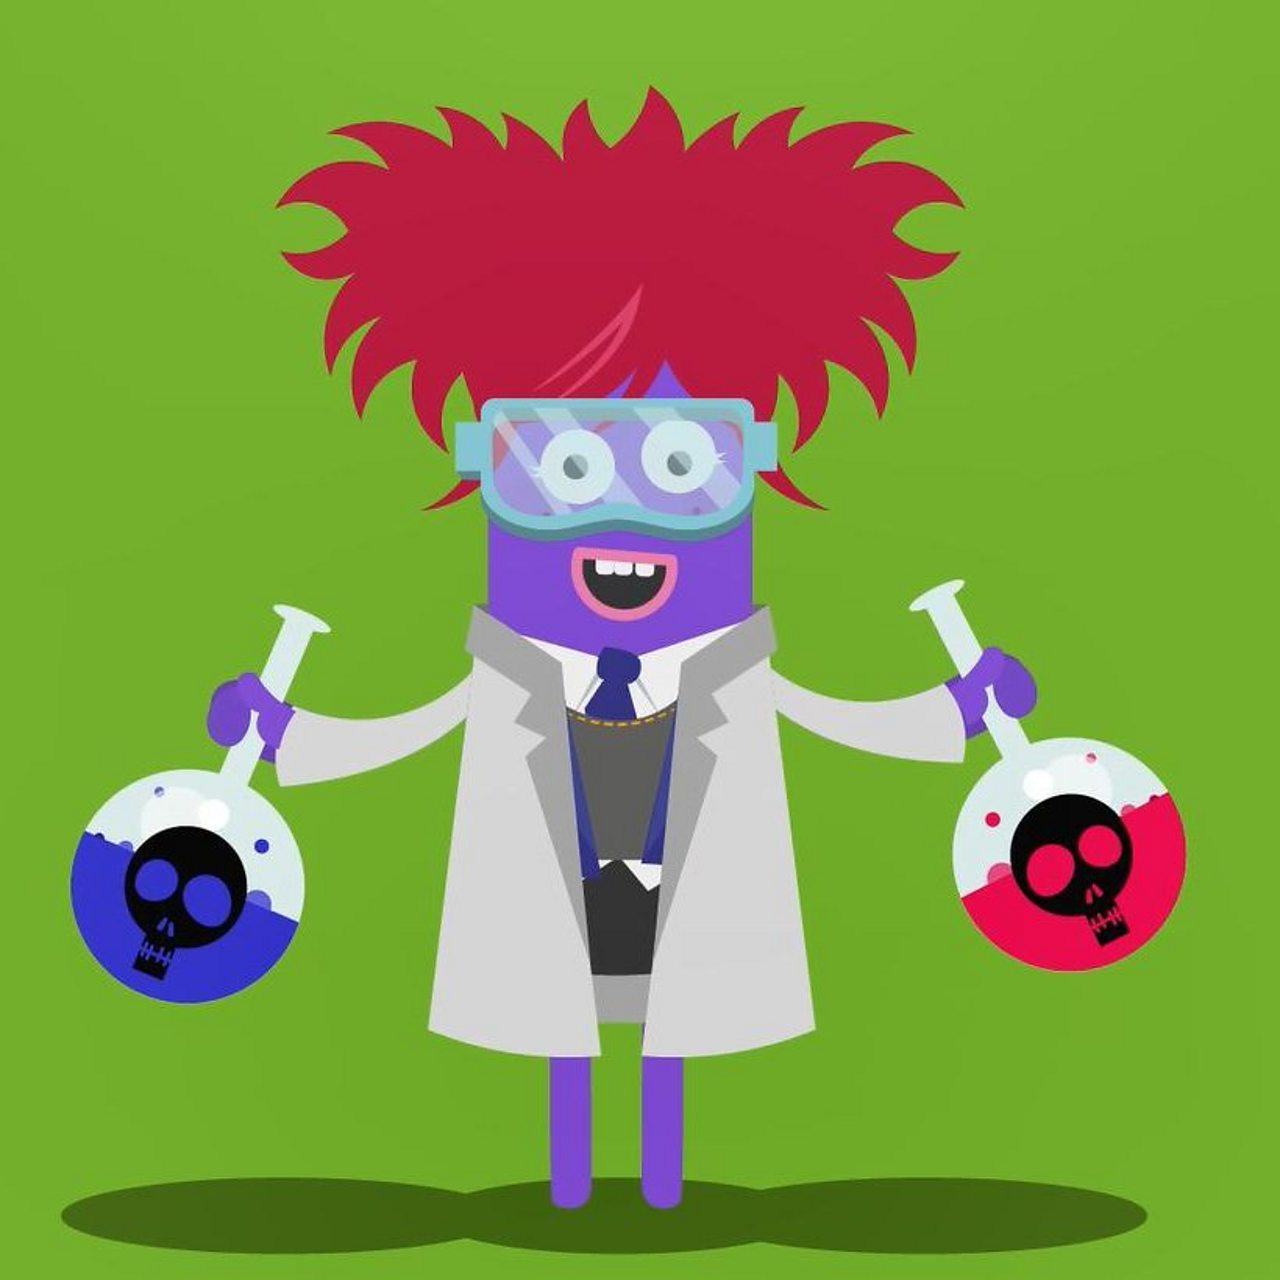 Animated image of a scientist holding a chemical bottle with both hands